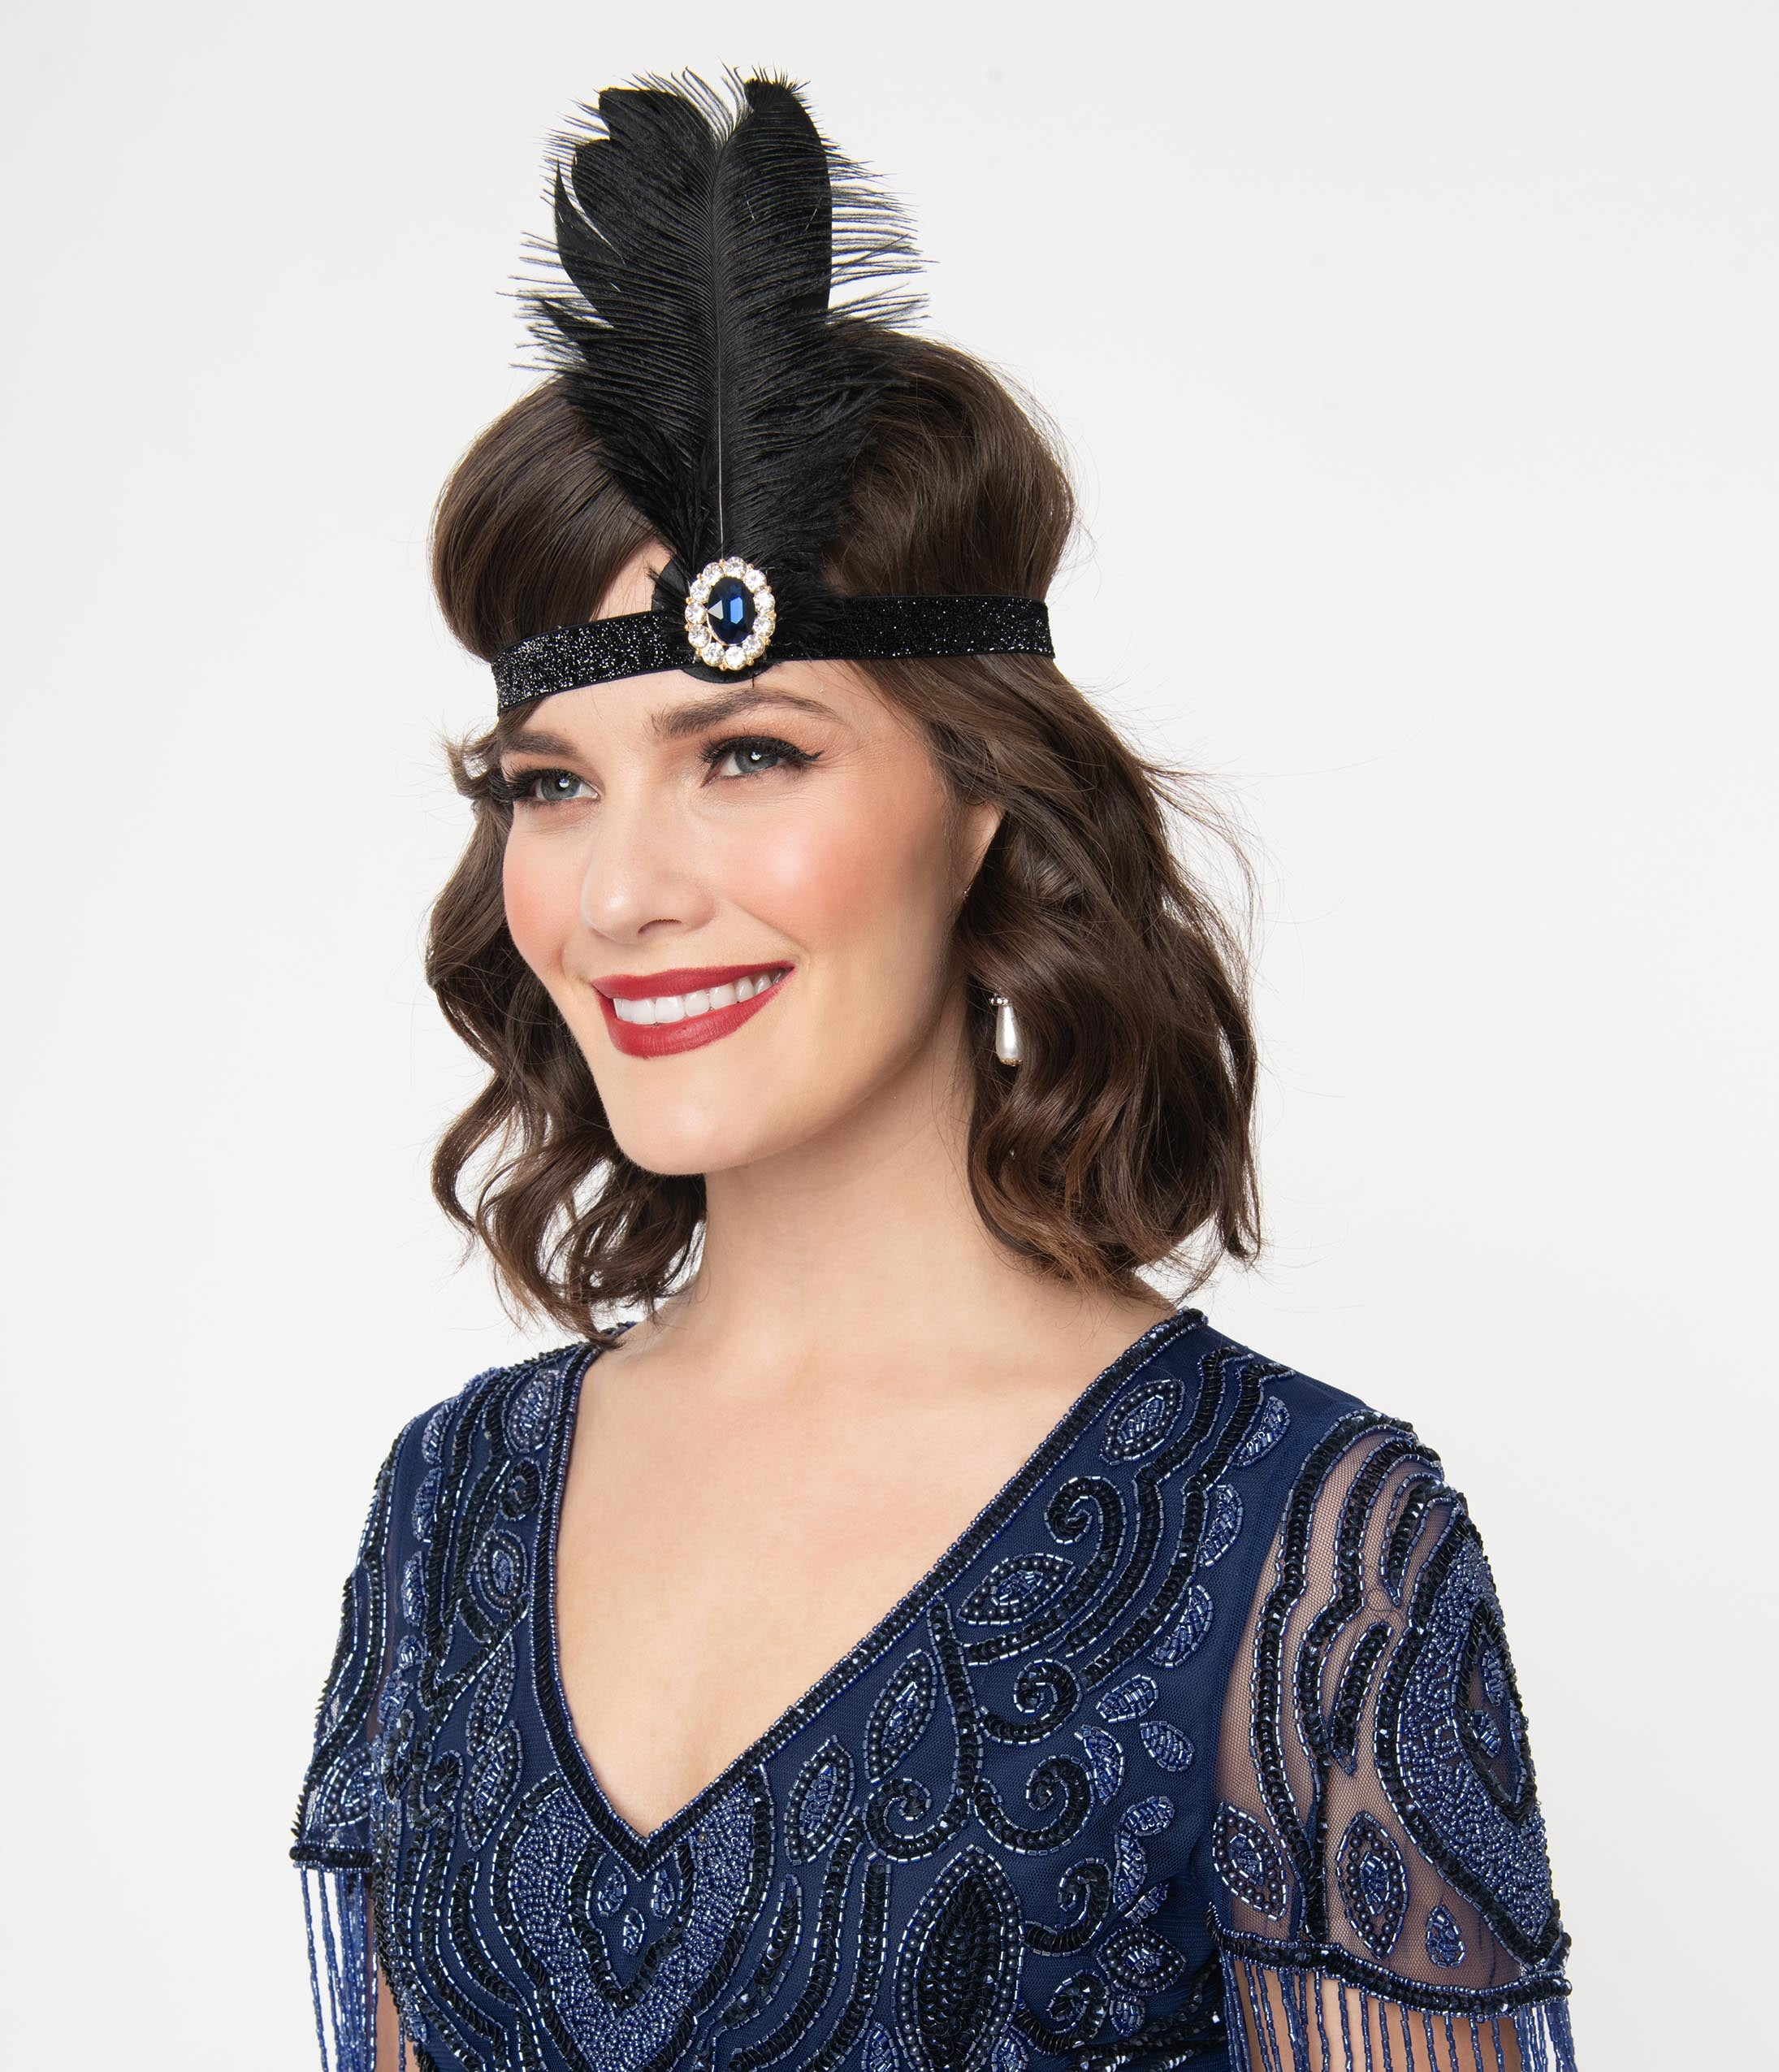 1920s Flapper Headband, Gatsby Headpiece, Wigs 1920S Sapphire Stone  Black Feather Flapper Headband $32.00 AT vintagedancer.com